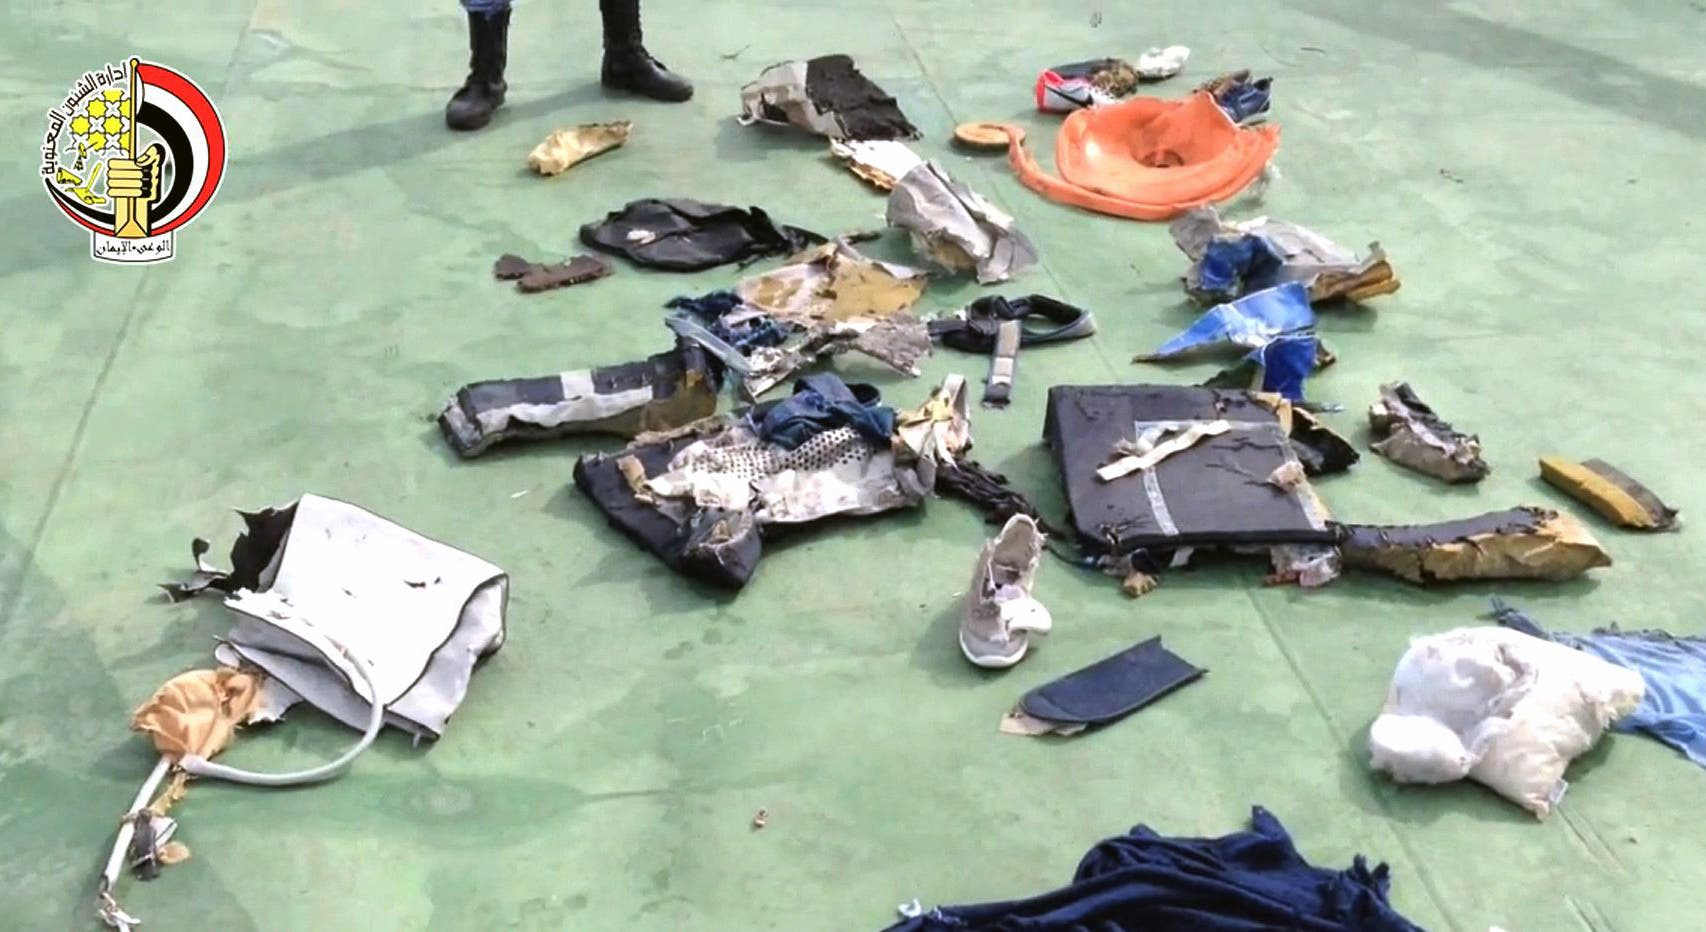 An image grab taken from a video uploaded on the official Facebook page of the Egyptian military spokesperson on May 21, 2016 and taken from an undisclosed location reportedly shows some debris that the search teams found in the sea after the EgyptAir Airbus A320 crashed in the Mediterranean. (AFP)